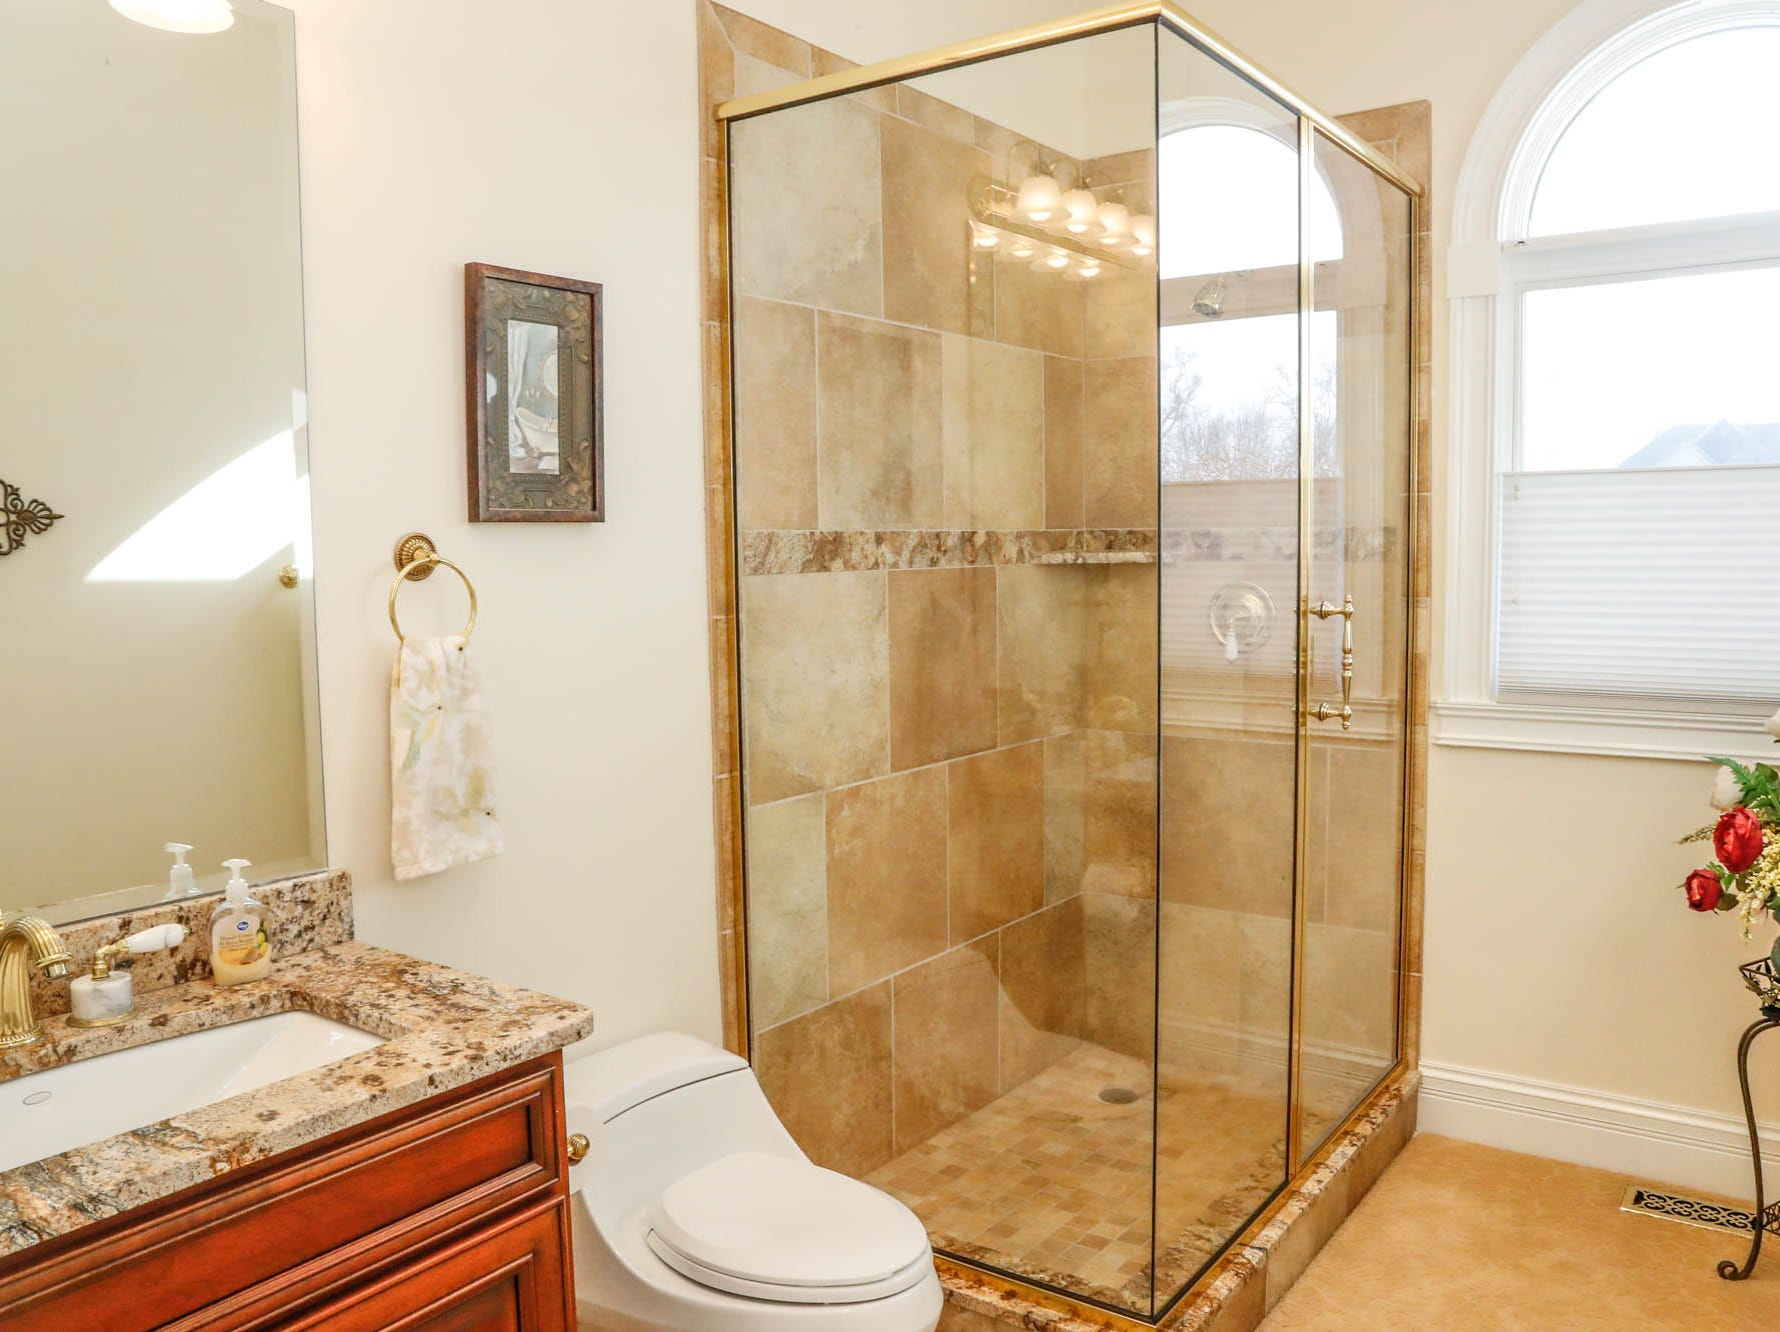 A first floor bathroom features gold accents and an italinate shower at a Greenwood home up for sale at 1216 Stone Ridge Court, Greenwood, Ind. on Wednesday, Jan. 30, 2019. The home features 8,234 square feet, four bedrooms, two master suits, a 10 car garage, and exercise room.